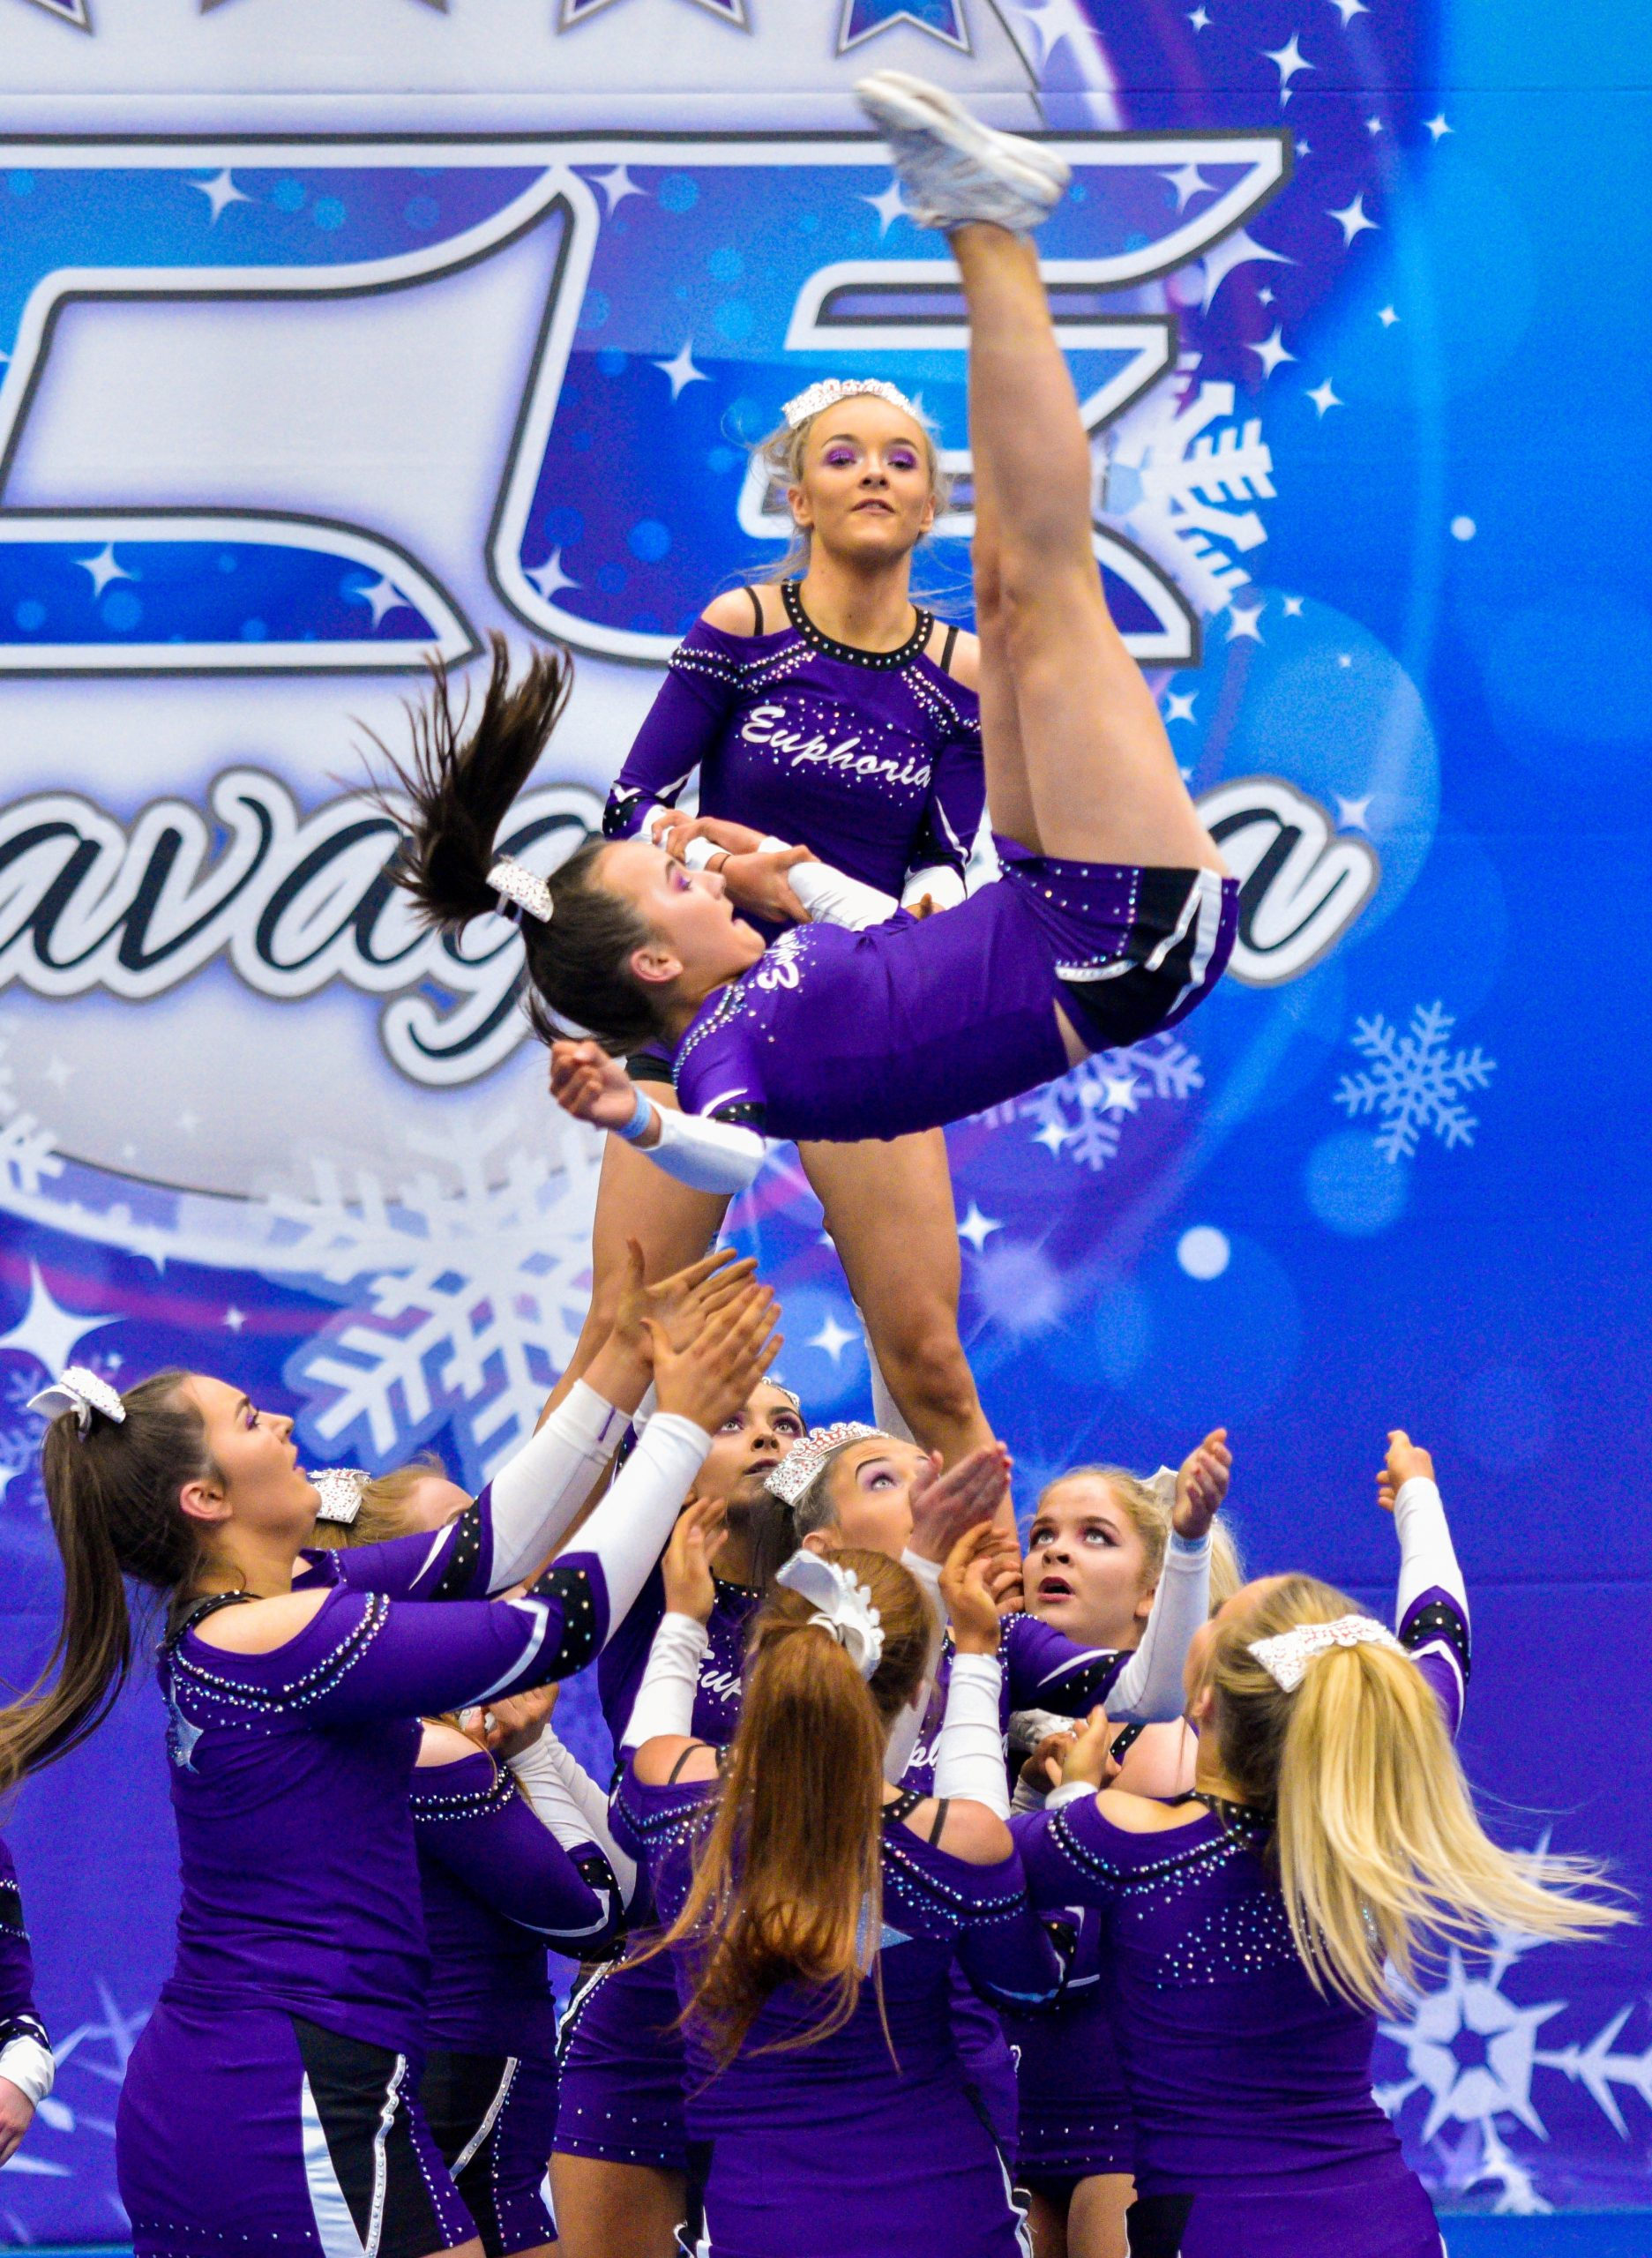 A cheer team dressed in purple compete in a pyramid at Incredibly Cool Events